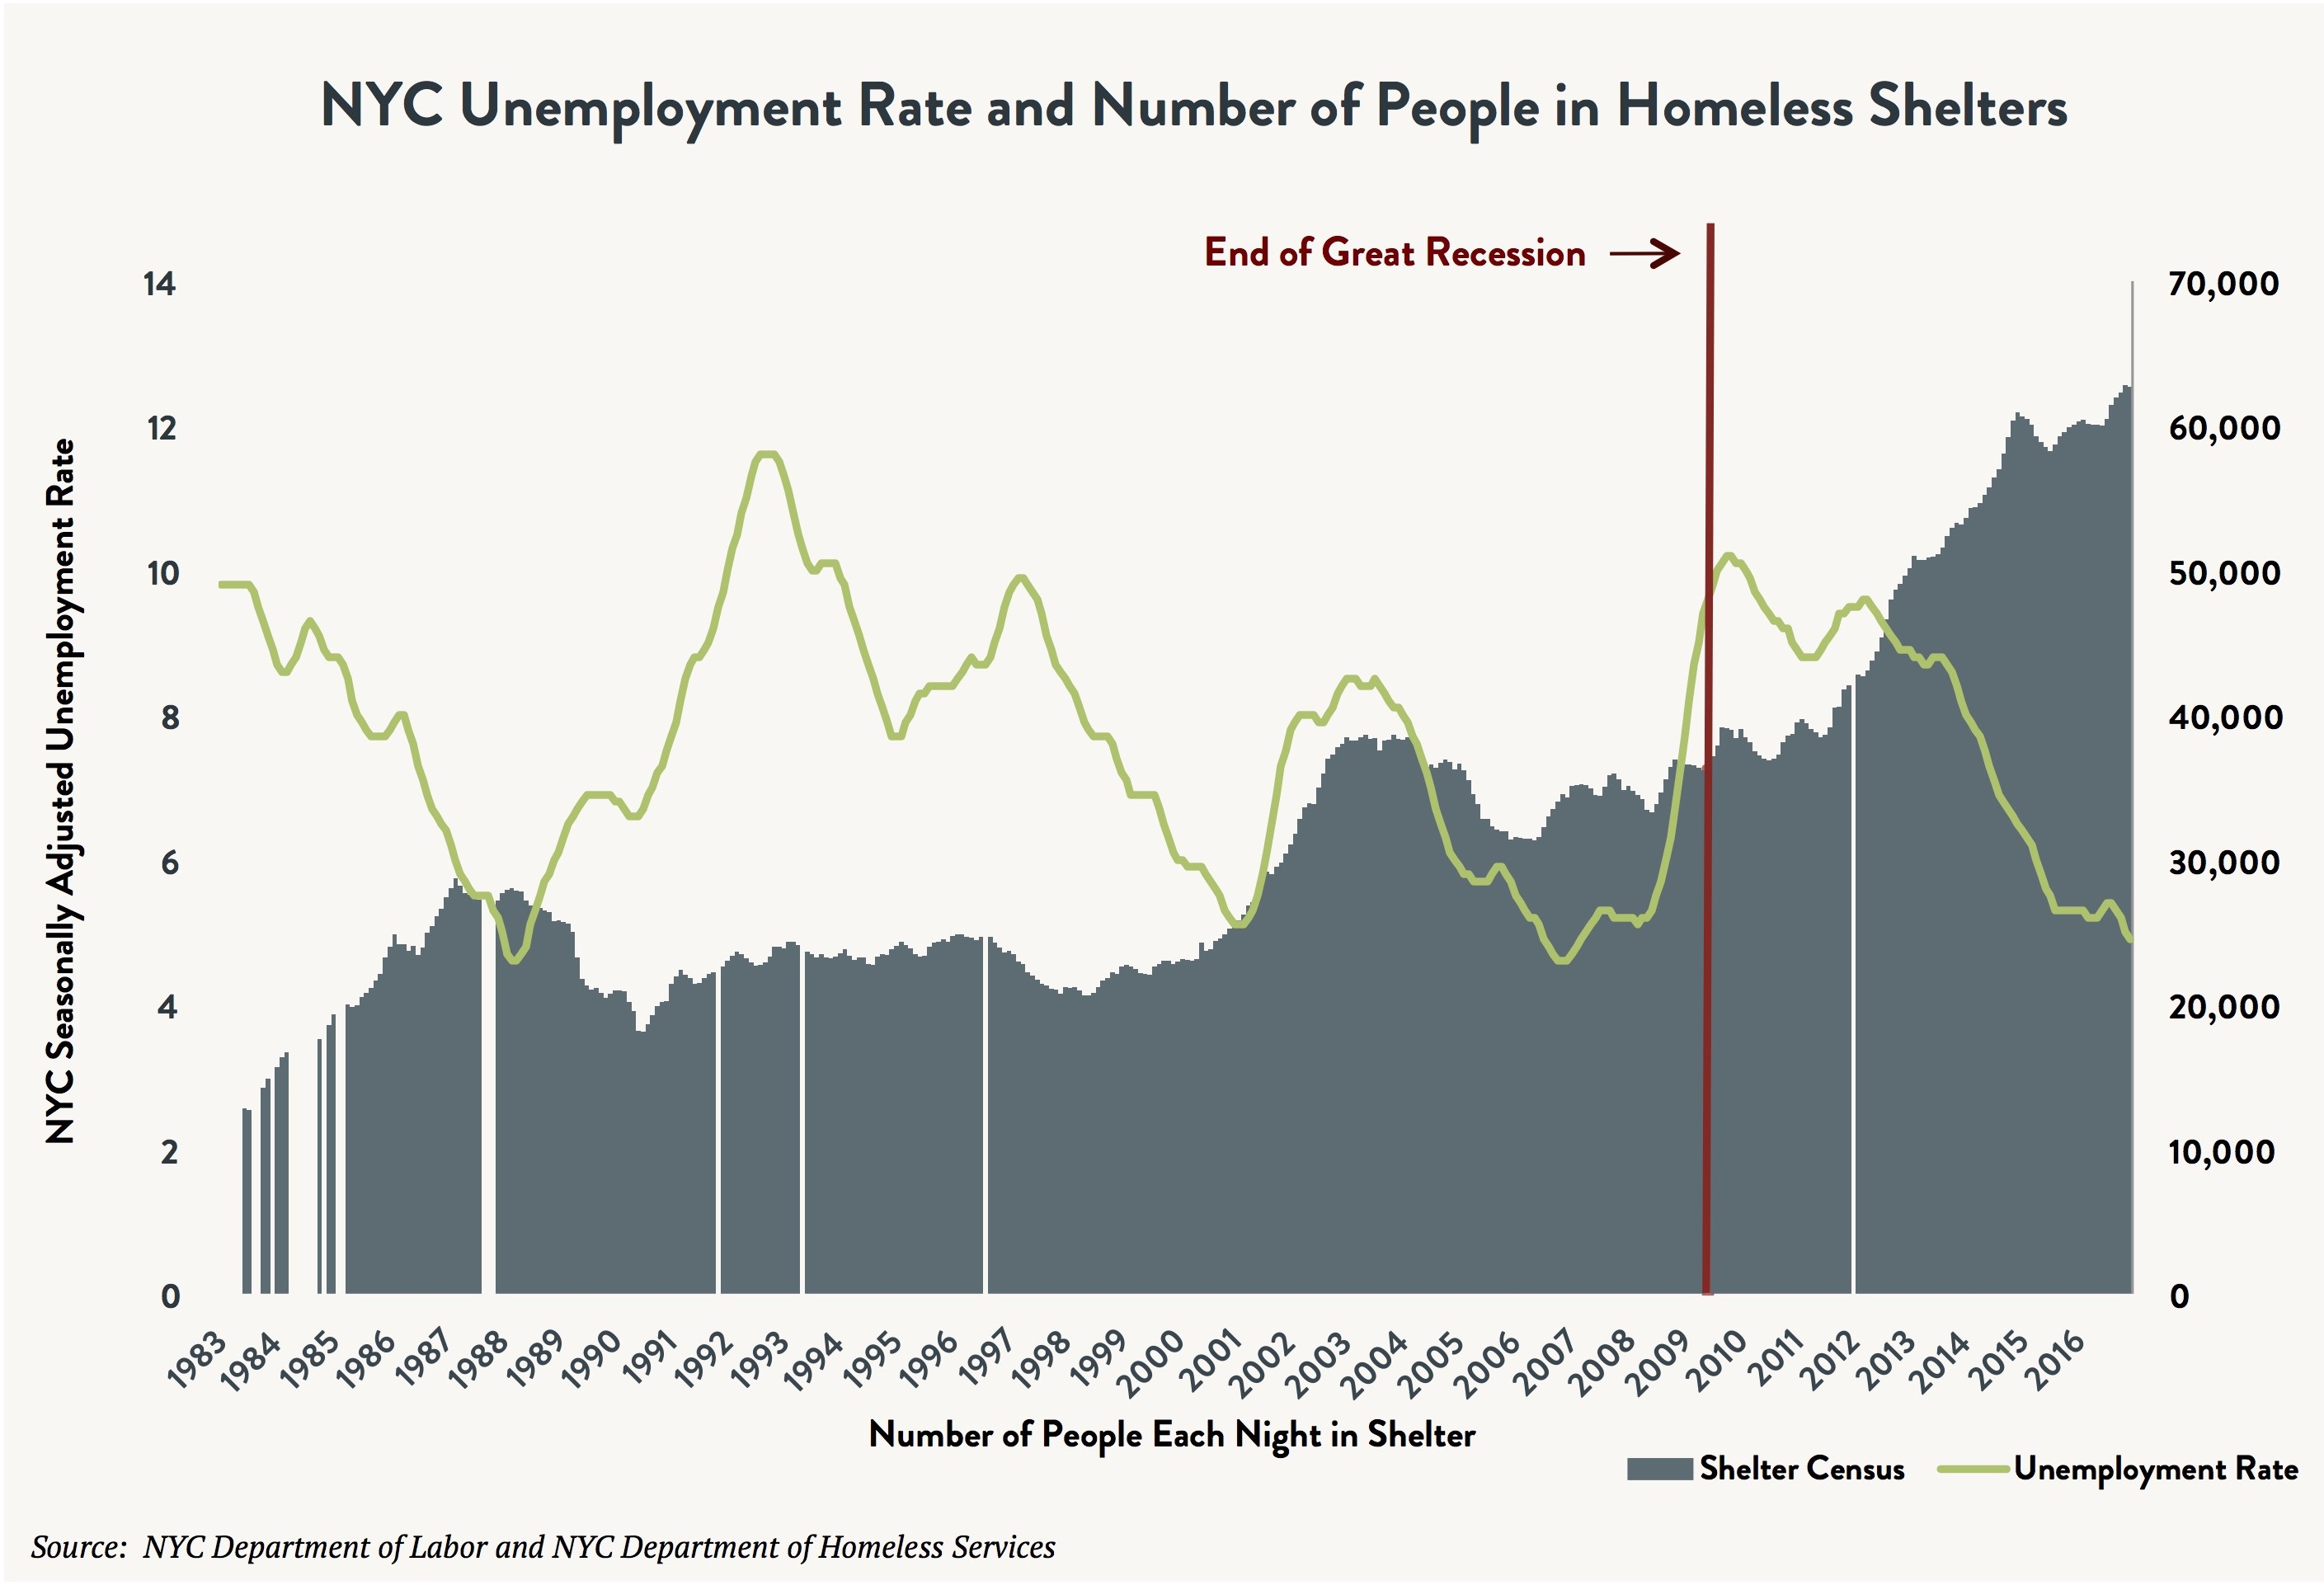 Cutting Mental Health Programs and Rising Homelessness Rates Actually Do Go Hand-in-Hand Mr. Government